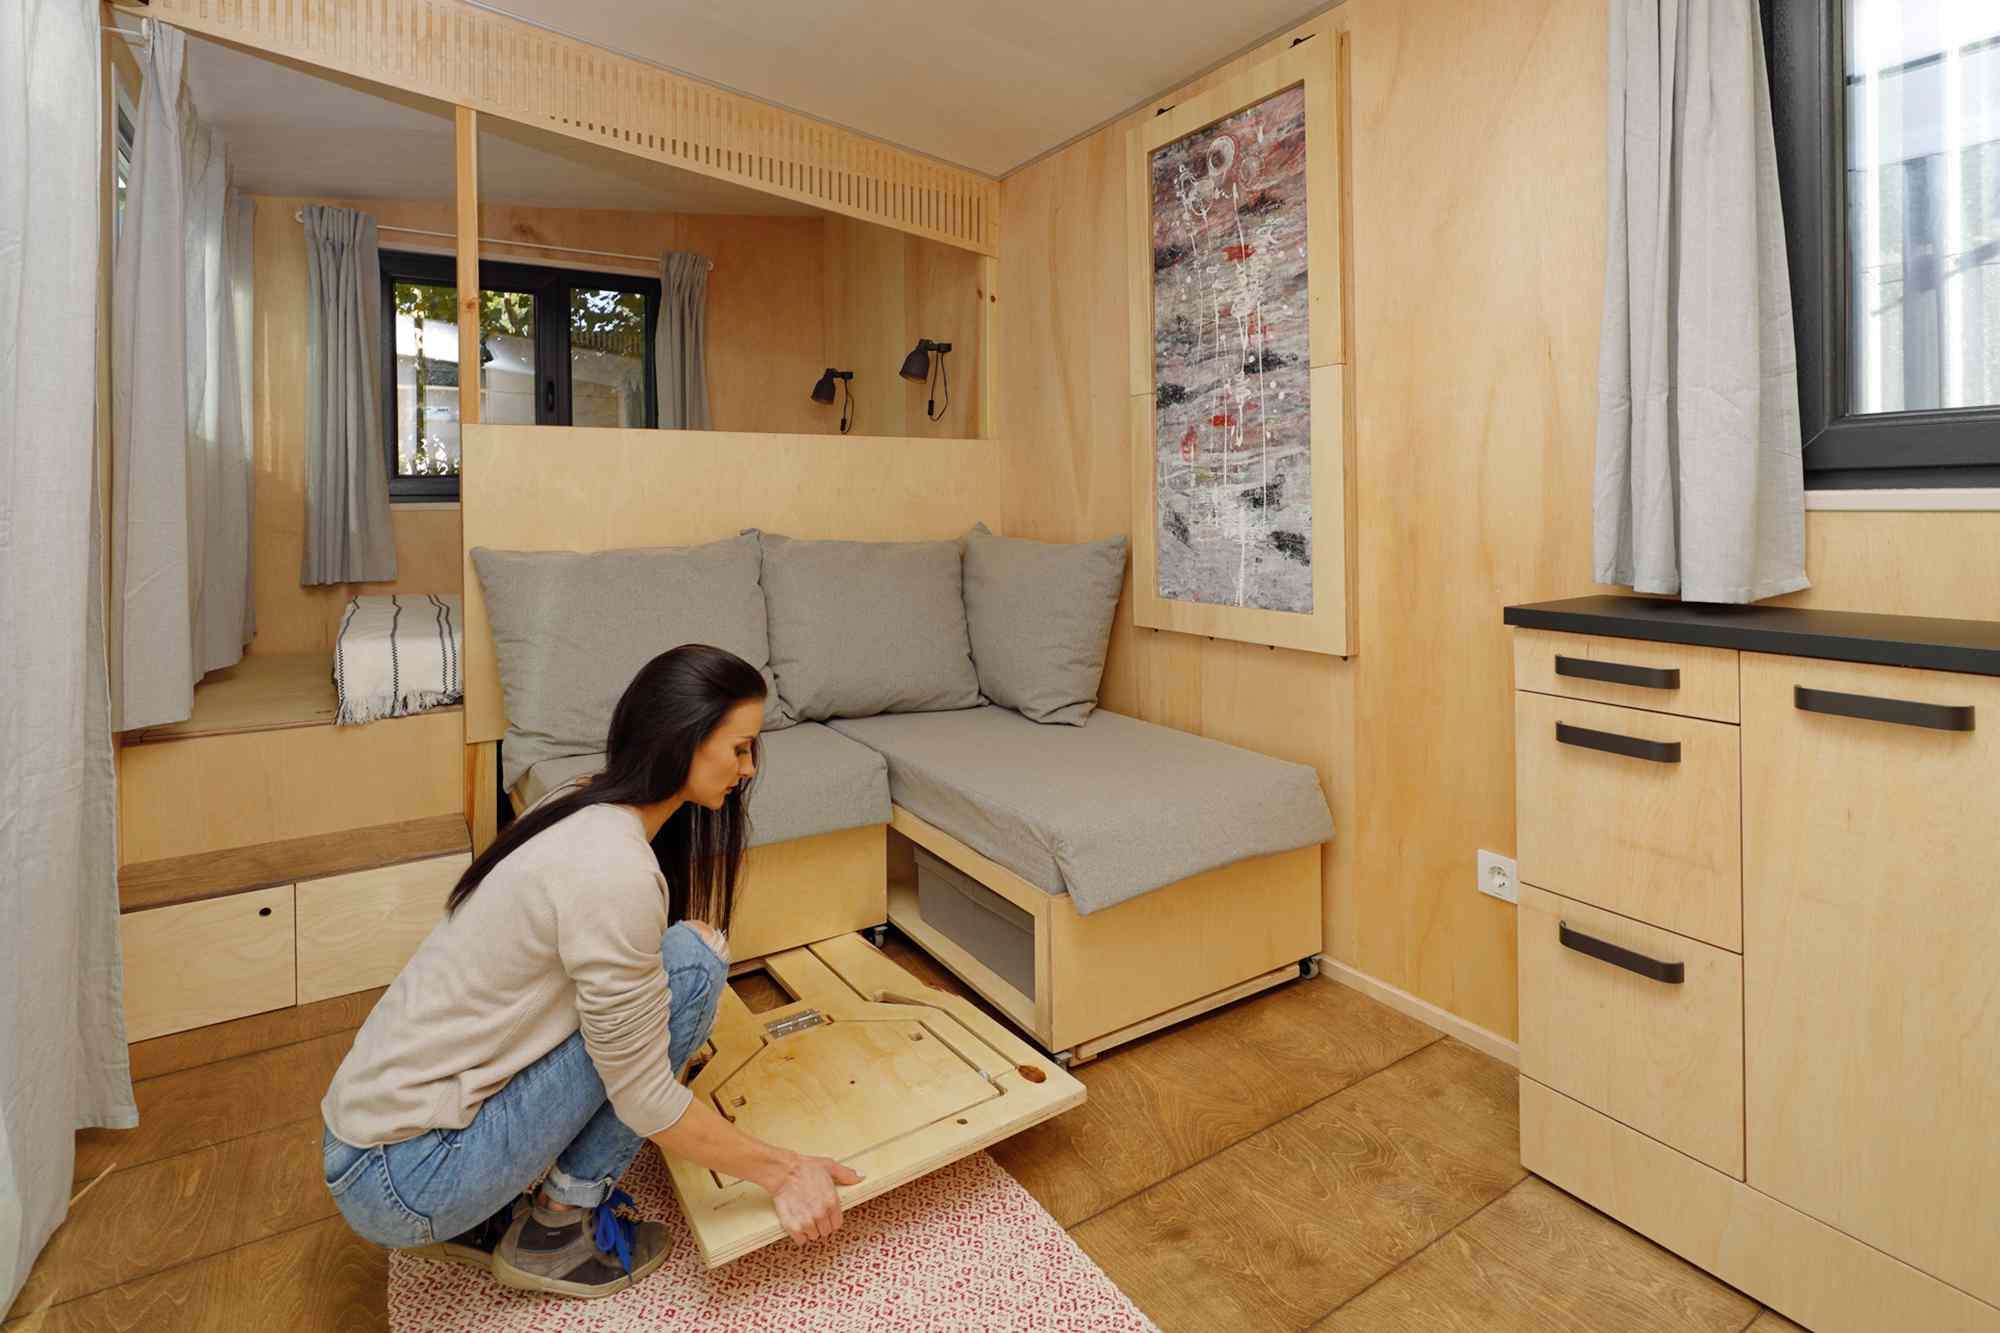 EBH 659 tiny house Ecobox Home Ltd. pulling out chairs